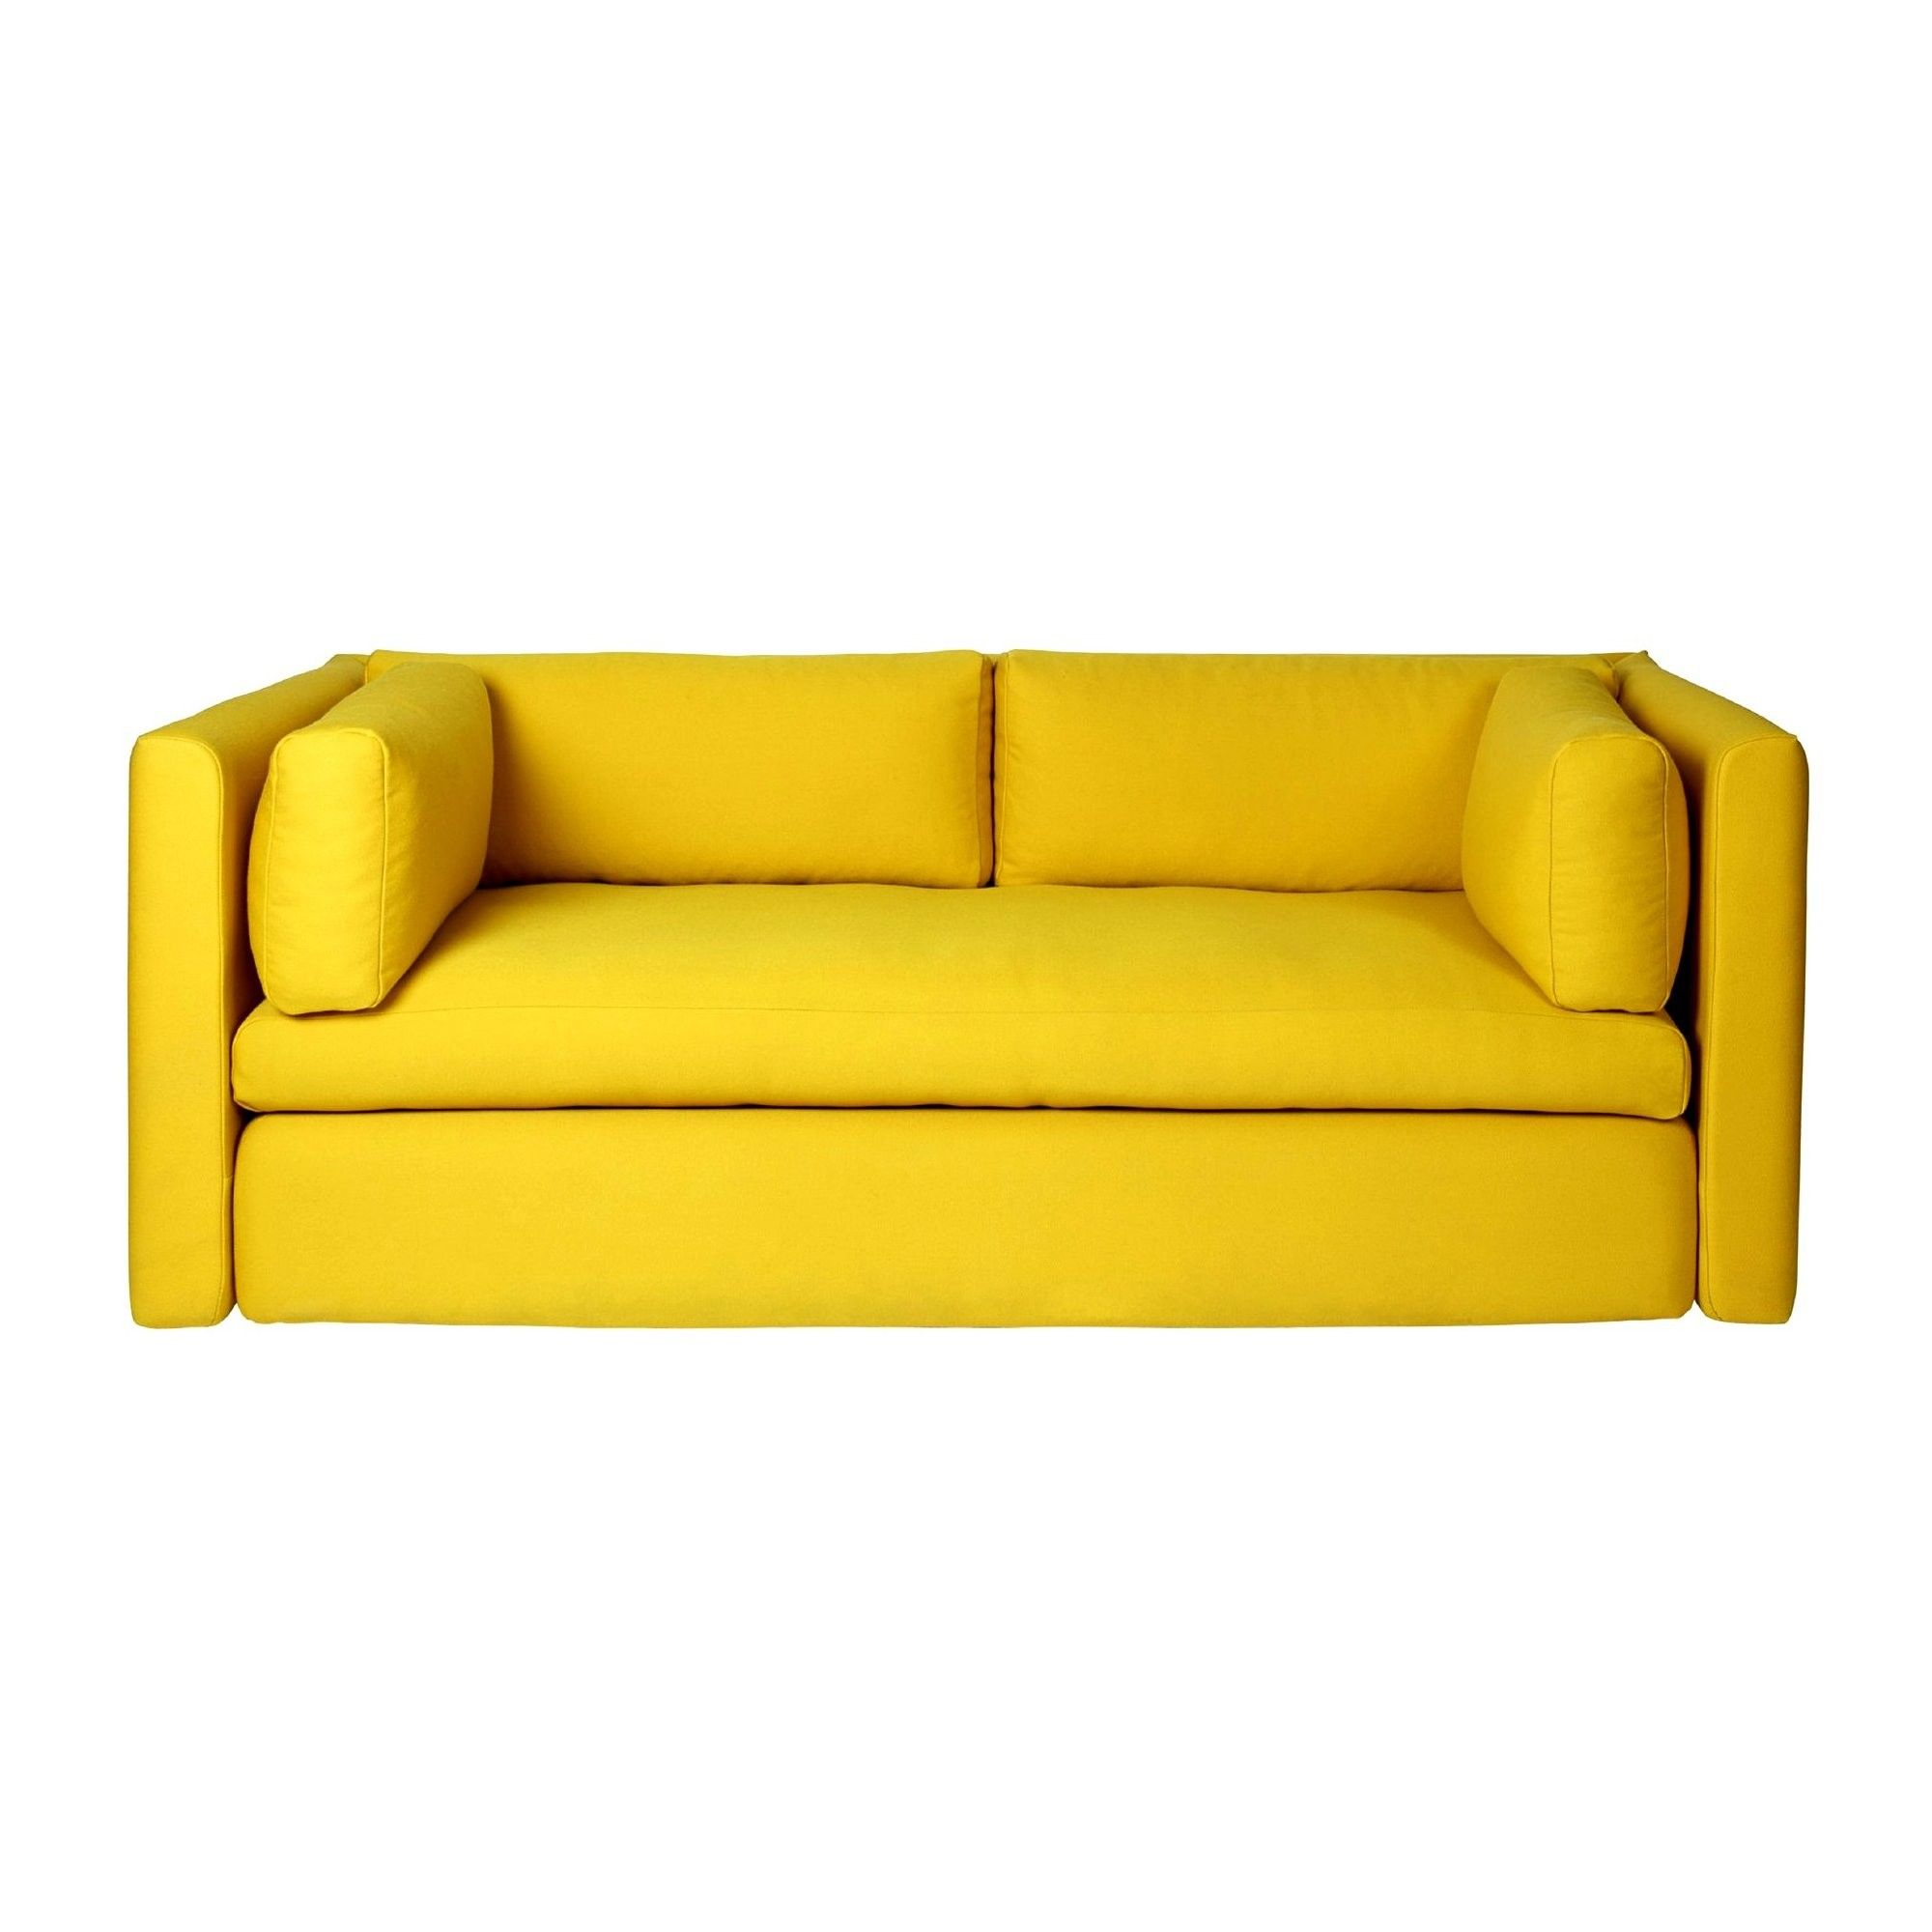 Hackney Sofa 2 Seater Sofas Daybeds Furniture Shop Skandium 2 Seater Sofa Sofa Seater Sofa